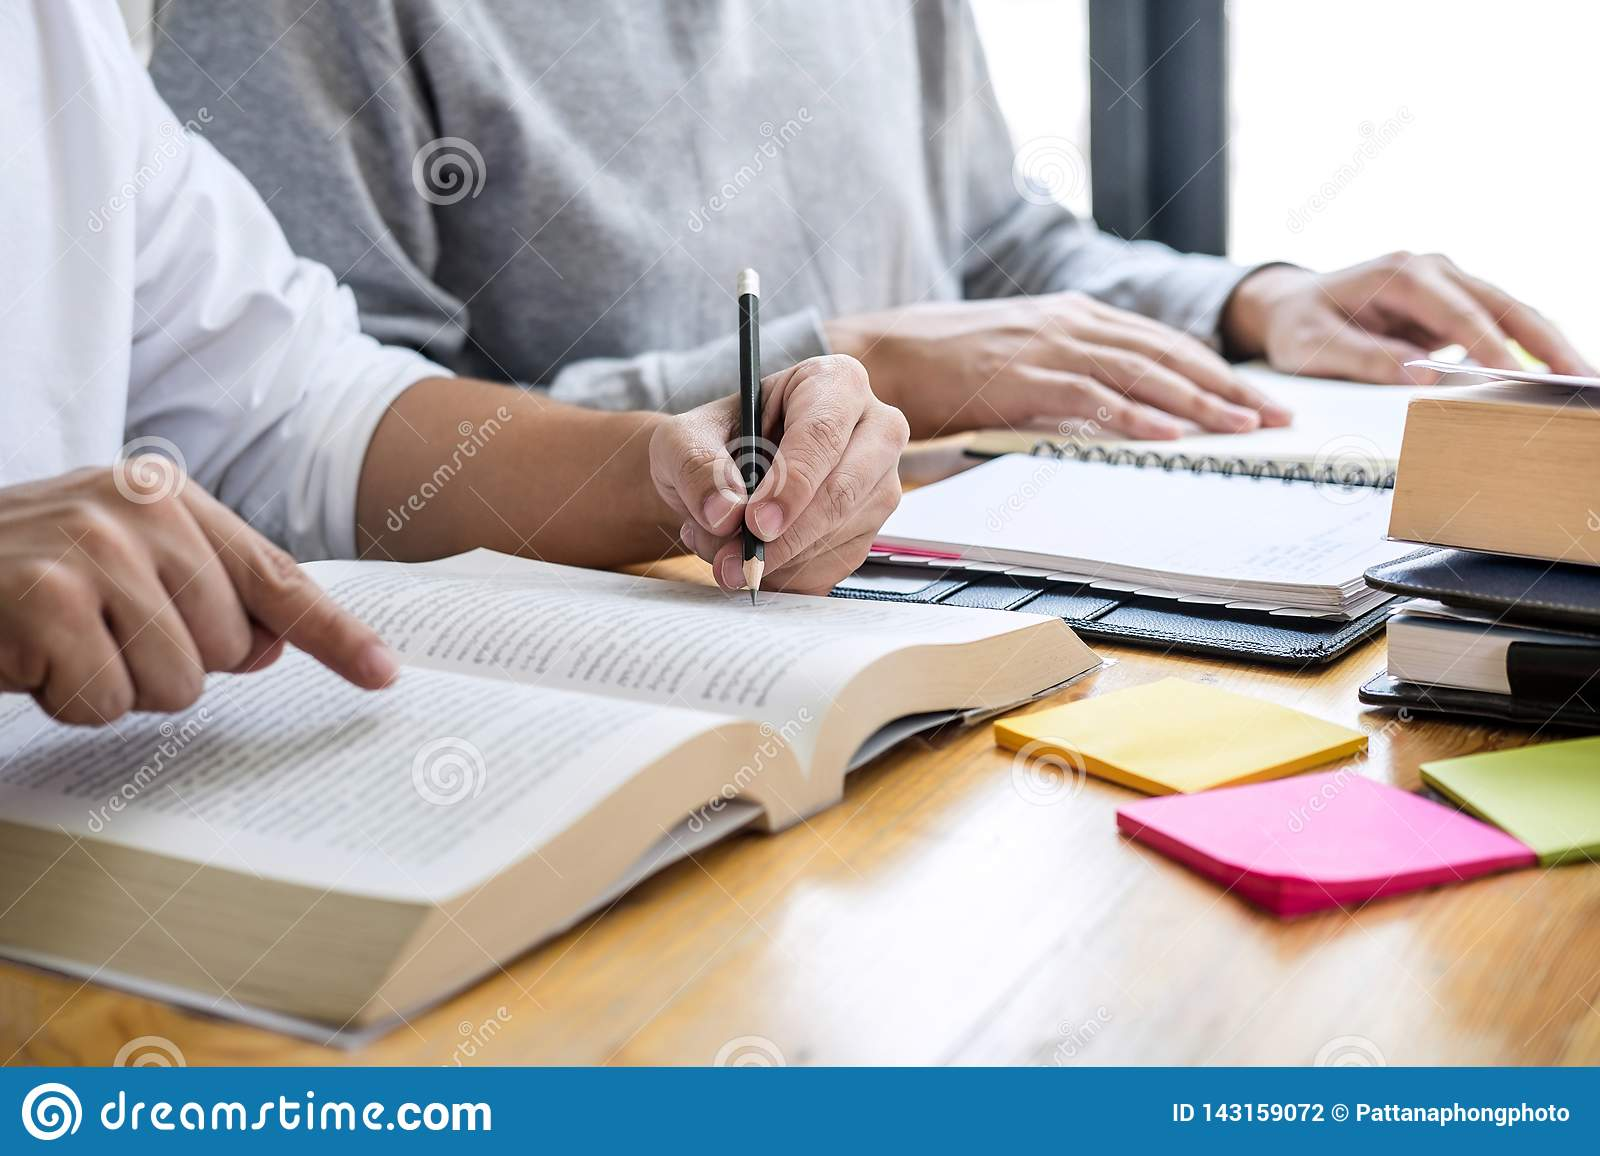 Education, teaching, learning concept. High school students or classmates group tutor in library studying and reading with helps